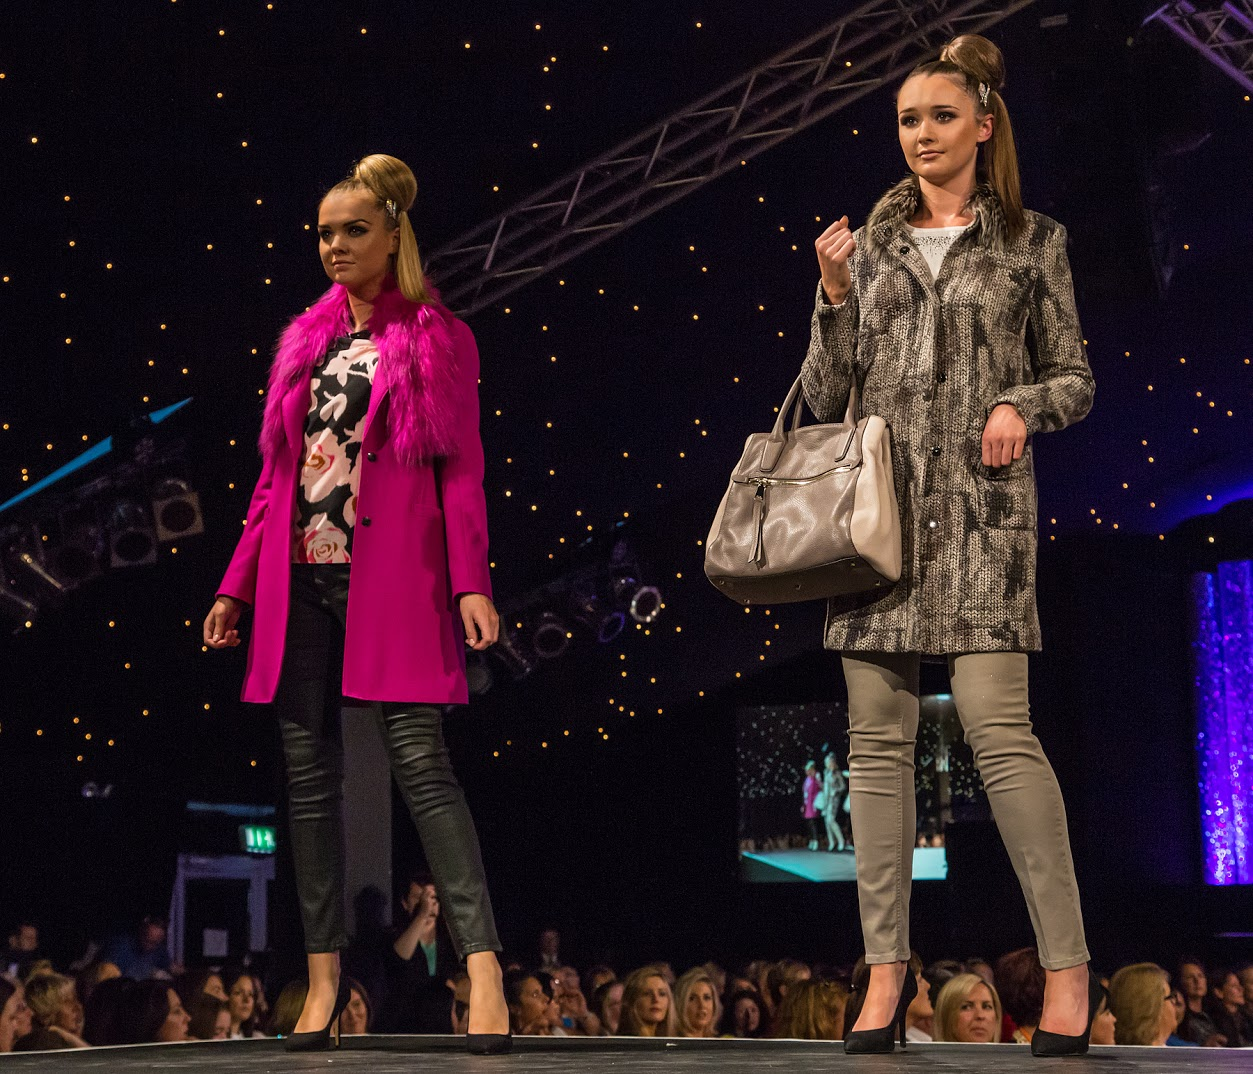 dolf_patijn_rose_of_tralee_fashion_16082015_0446